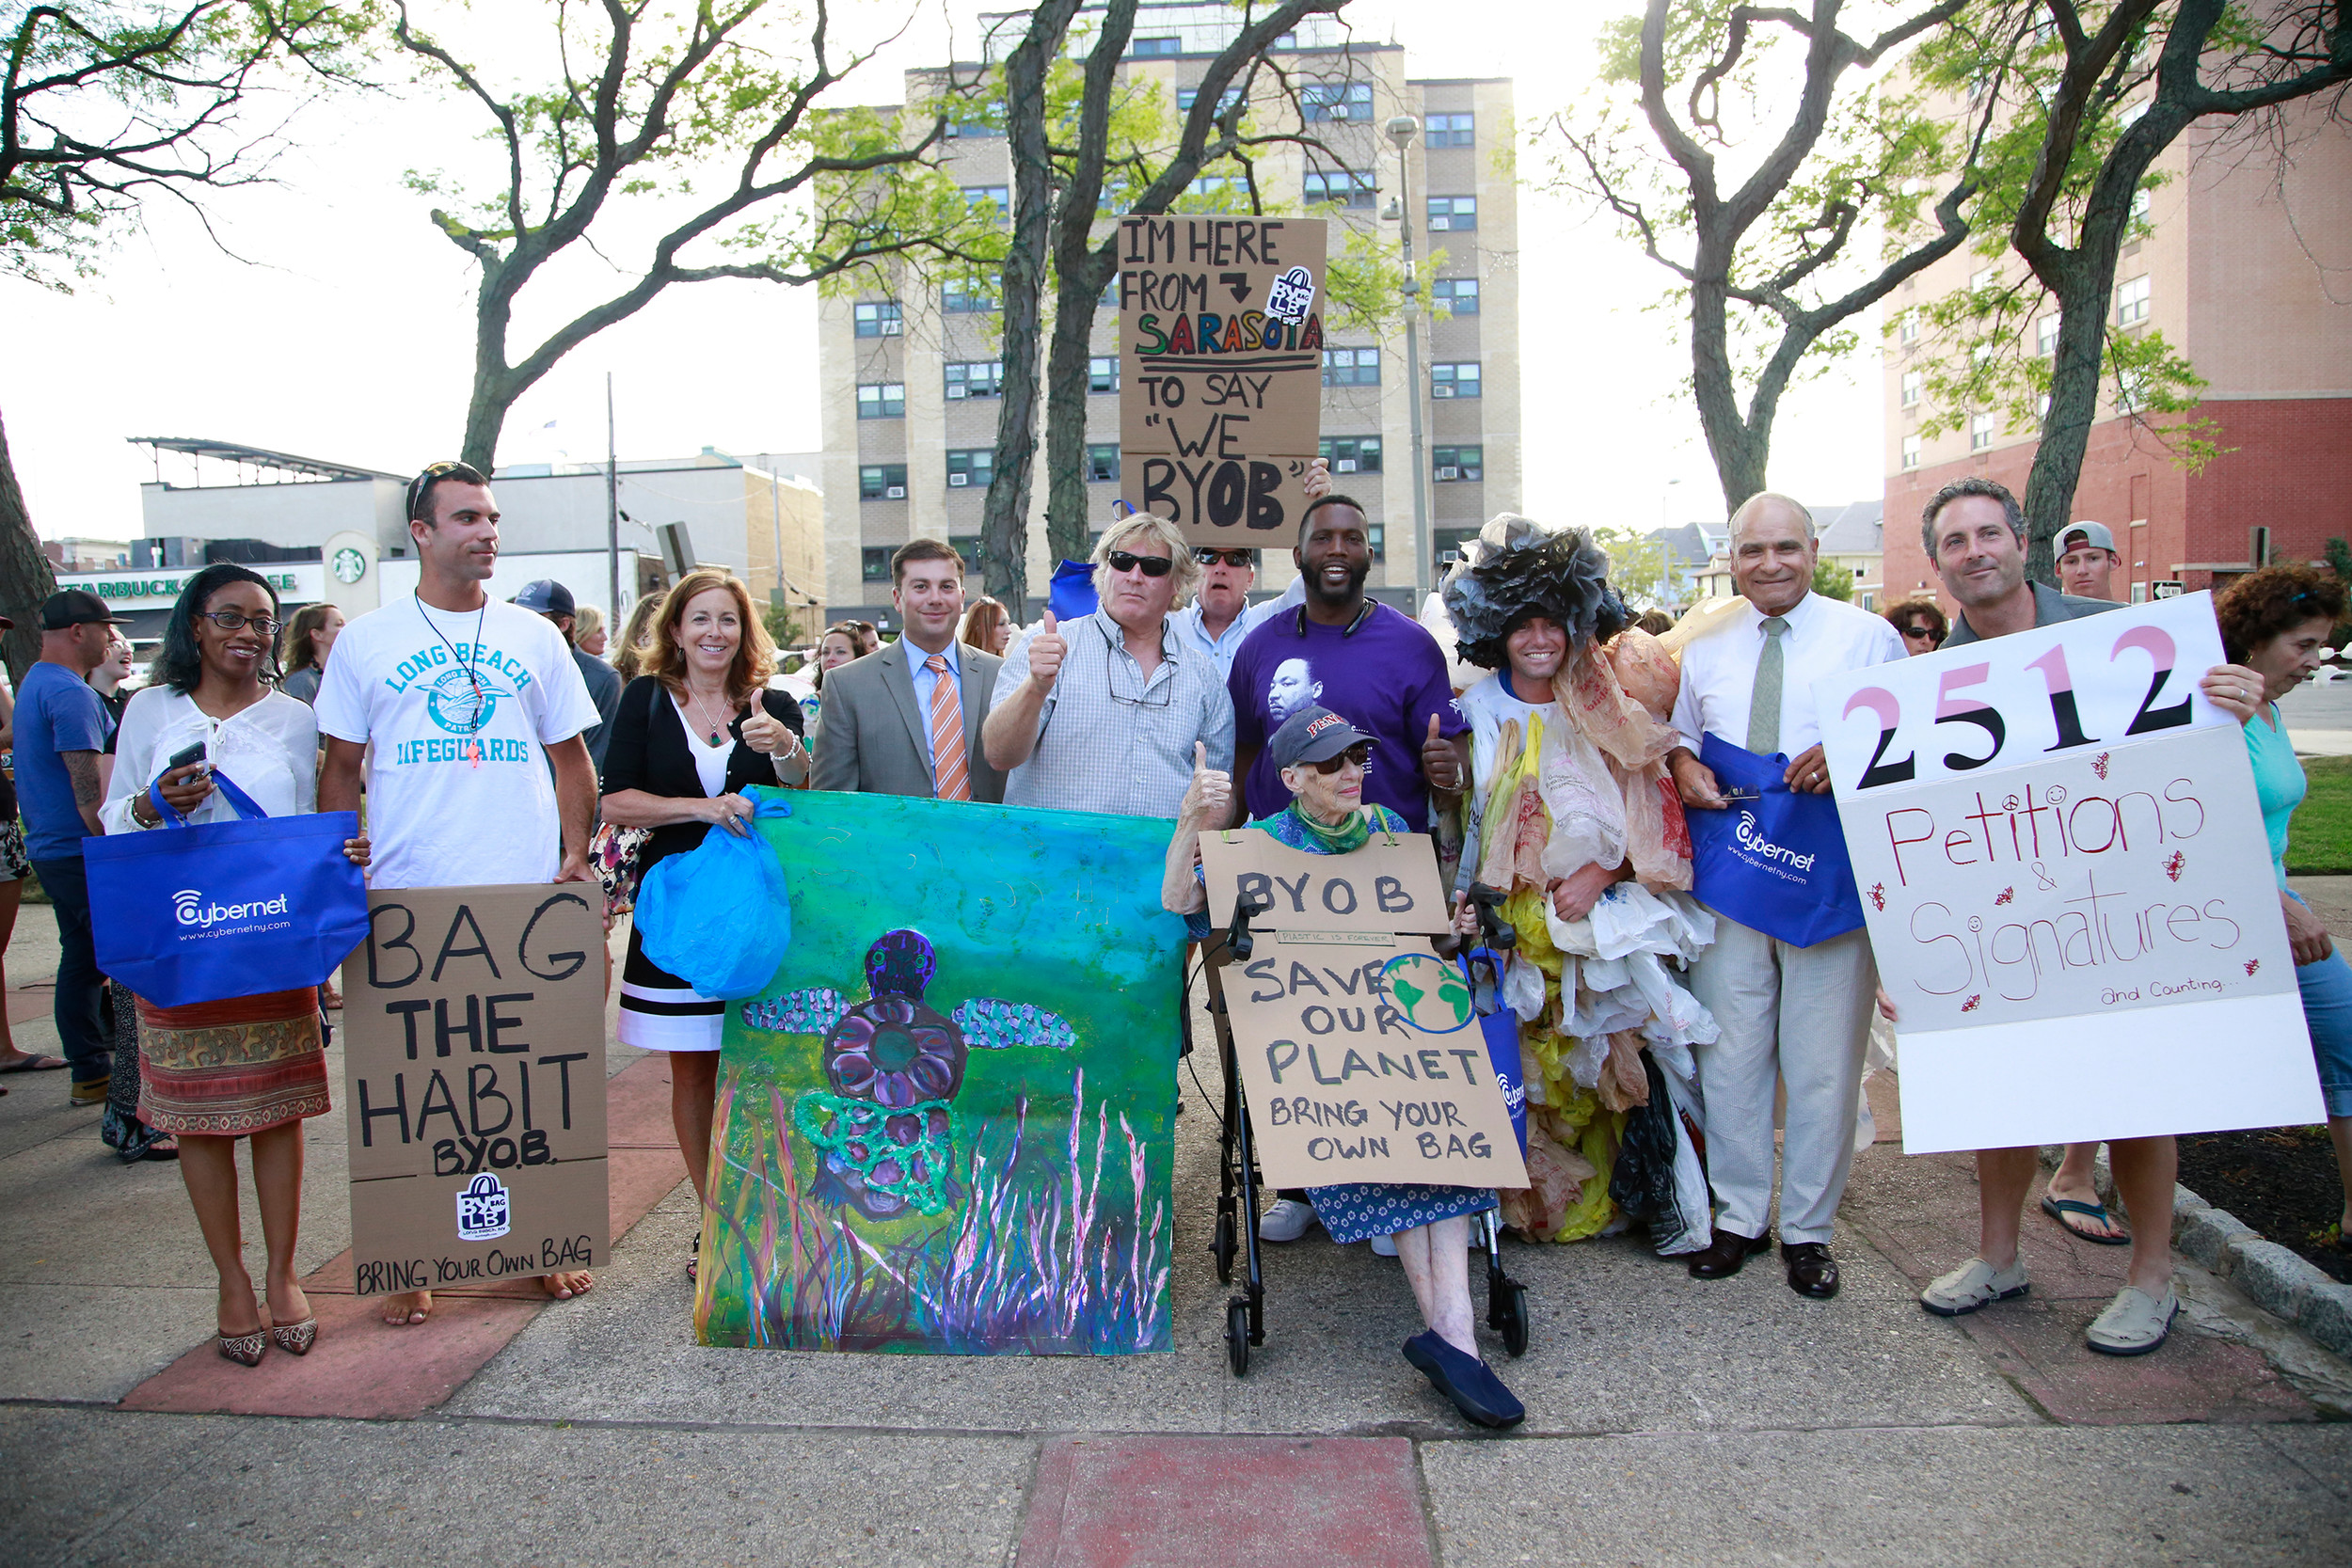 Residents and city officials gathered on July 19 at Kennedy Plaza in support of a ban on plastic bags, that scatter by the thousands into Reynolds Channel and elsewhere.